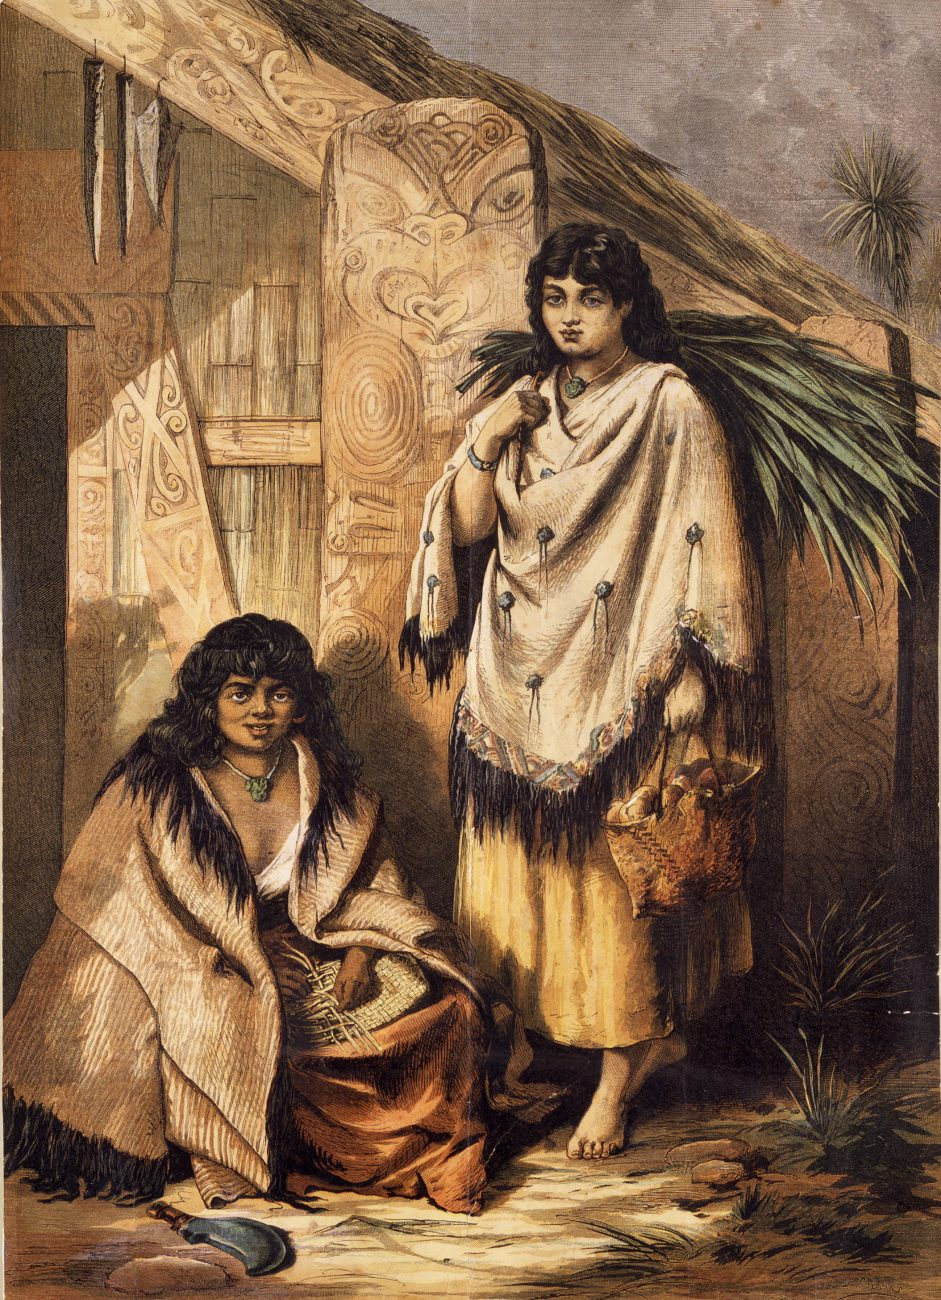 Flax fibre provided not only strength but, when carefully prepared from the appropriate varieties, a lustrous beauty seen in the fine cloaks (kakahu) worn by these young women.